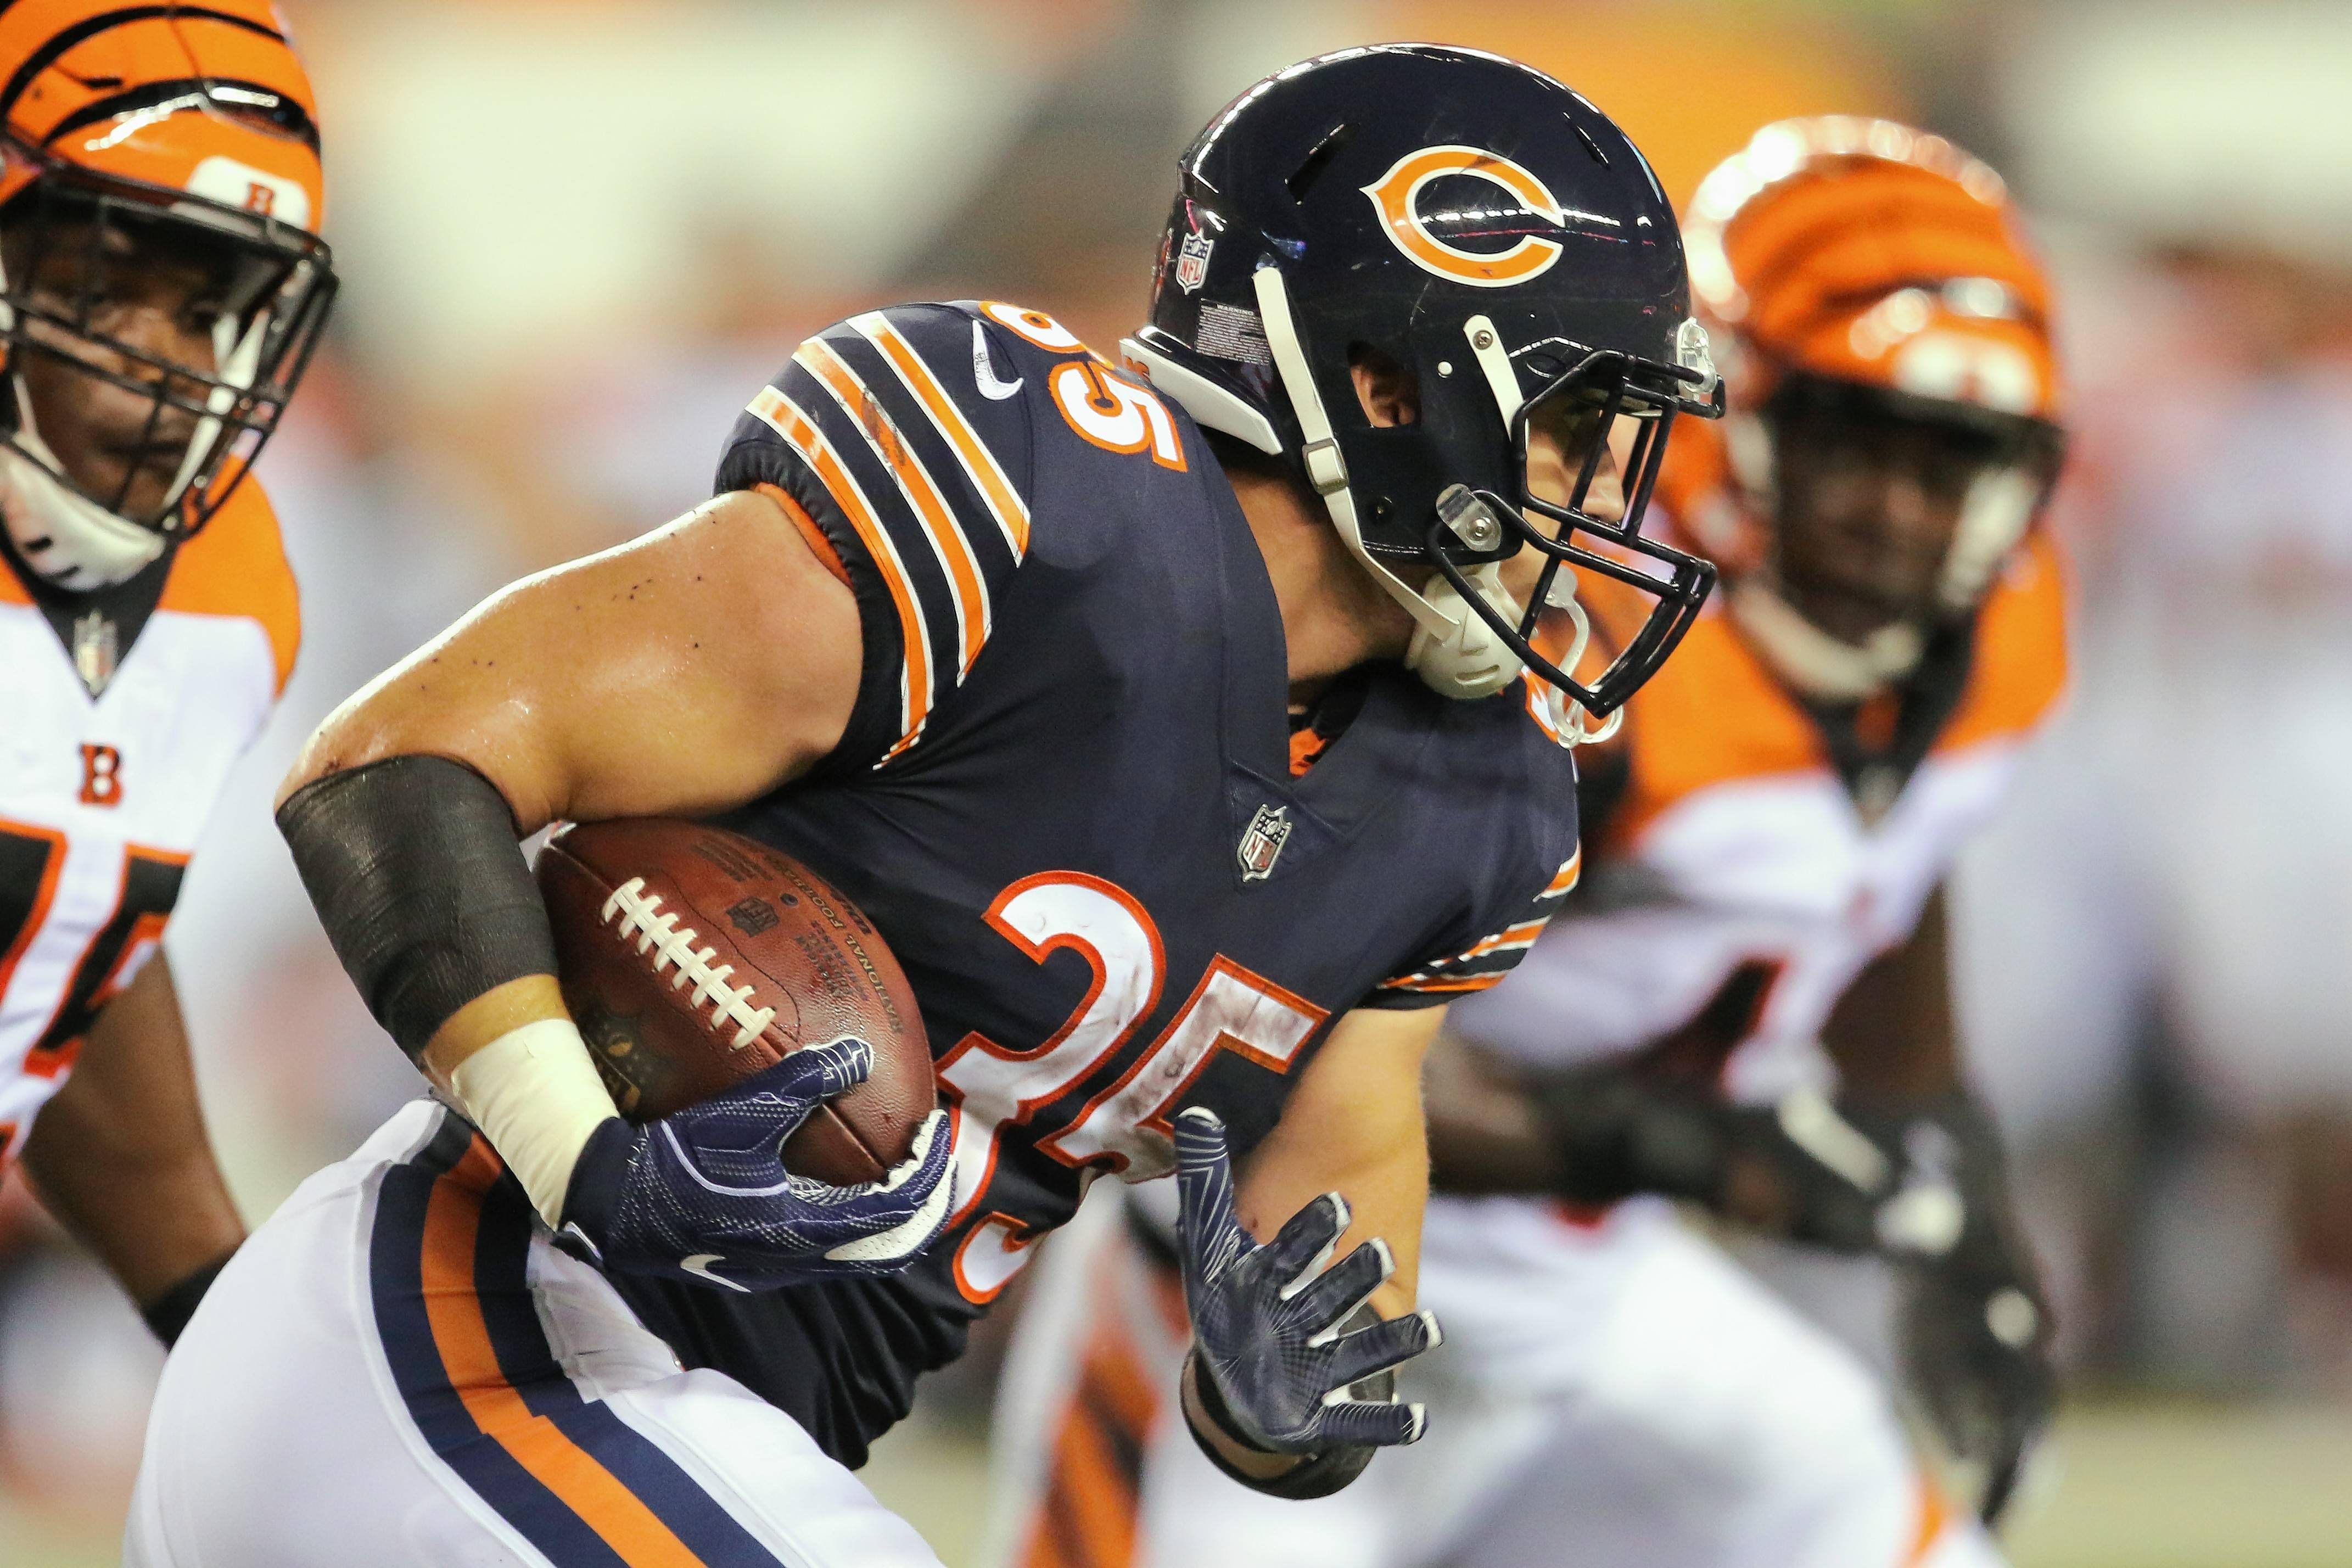 Undrafted rookie RB Ryan Nall had a 69-yard run against the Bengals in the Chicago Bears' second preseason game. But he knows one solid run won't earn him a spot on the 53-man roster.